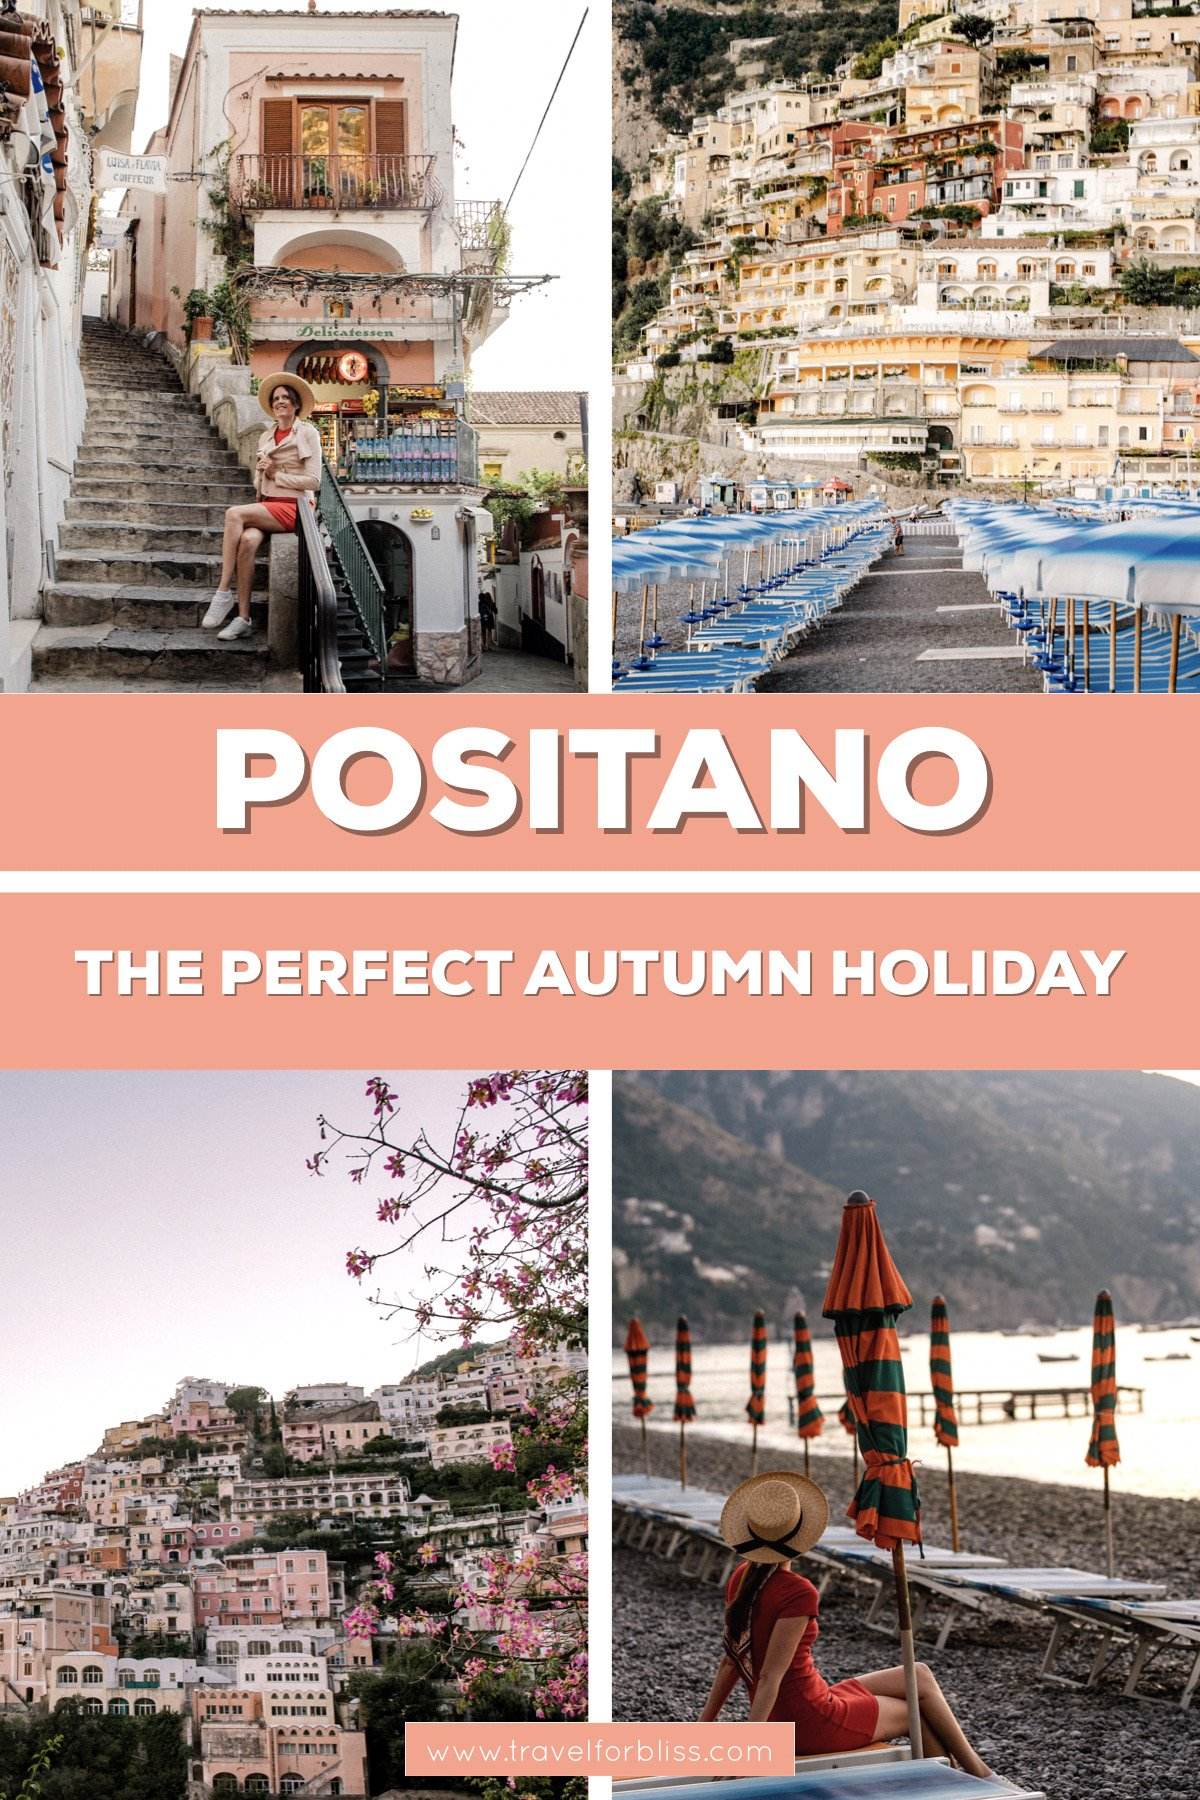 Positano In Autumn. Best time to visit Positano on the Amalfi Coast